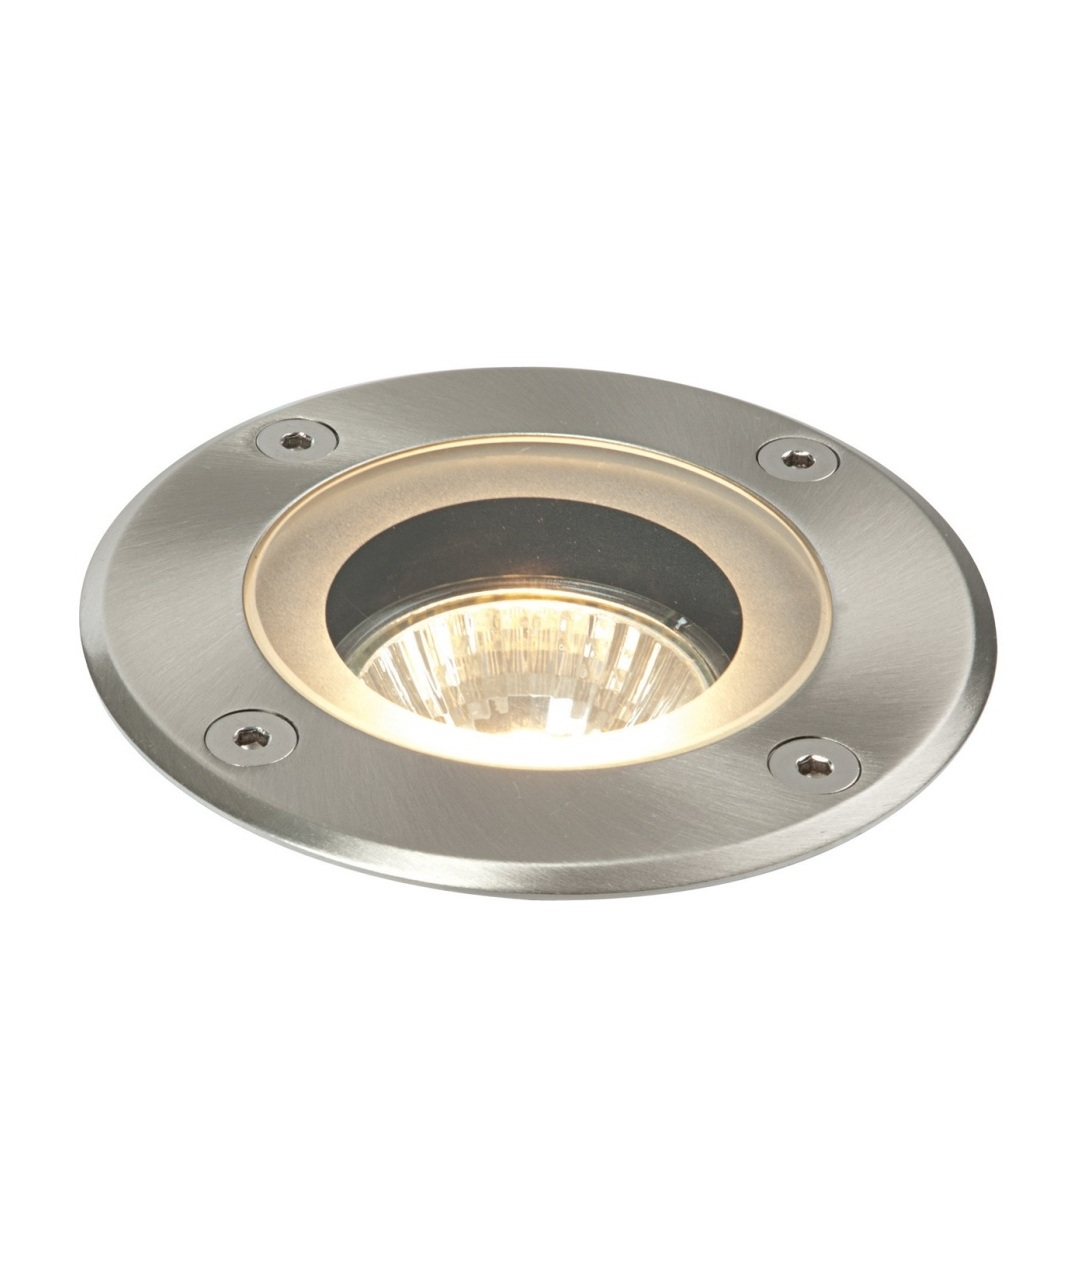 Recessed Ground Light Marine Grade